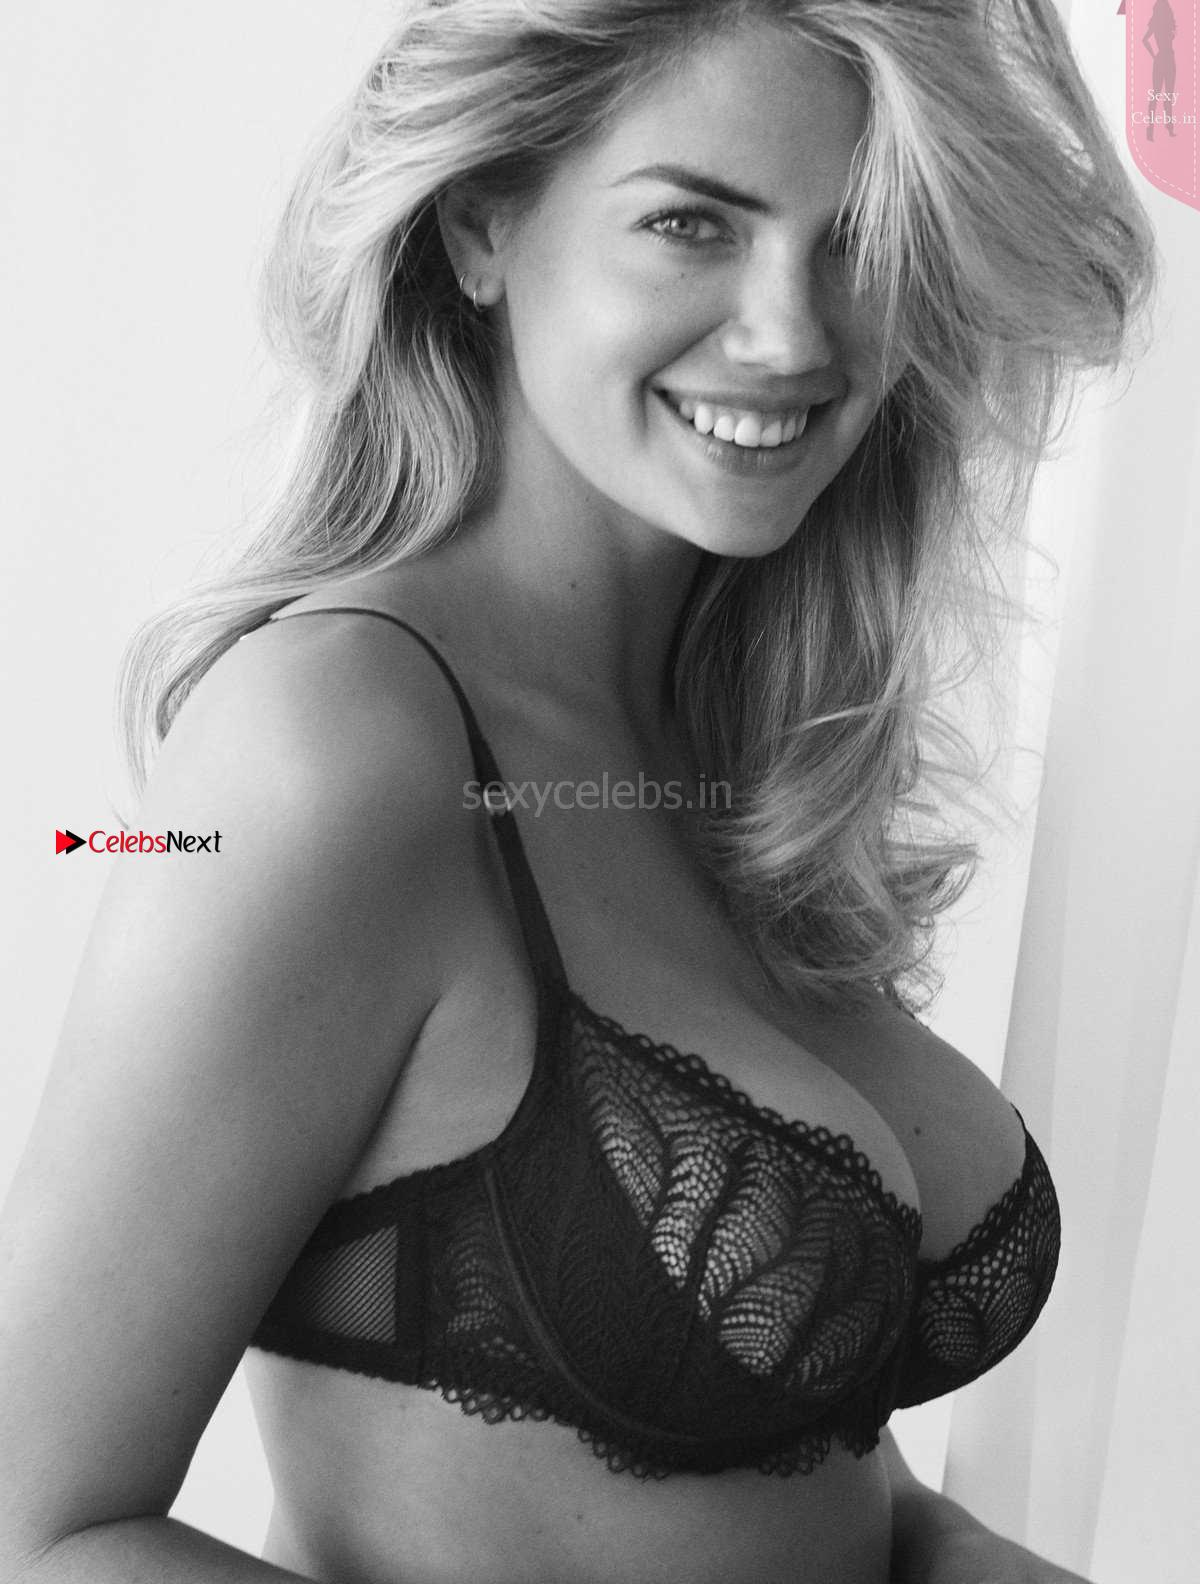 Kate Upton Cleavages Boobs IN Bra and Panties Yamamay Confident Beauty 2018 Campaign ~ SexyCelebs.in Exclusive